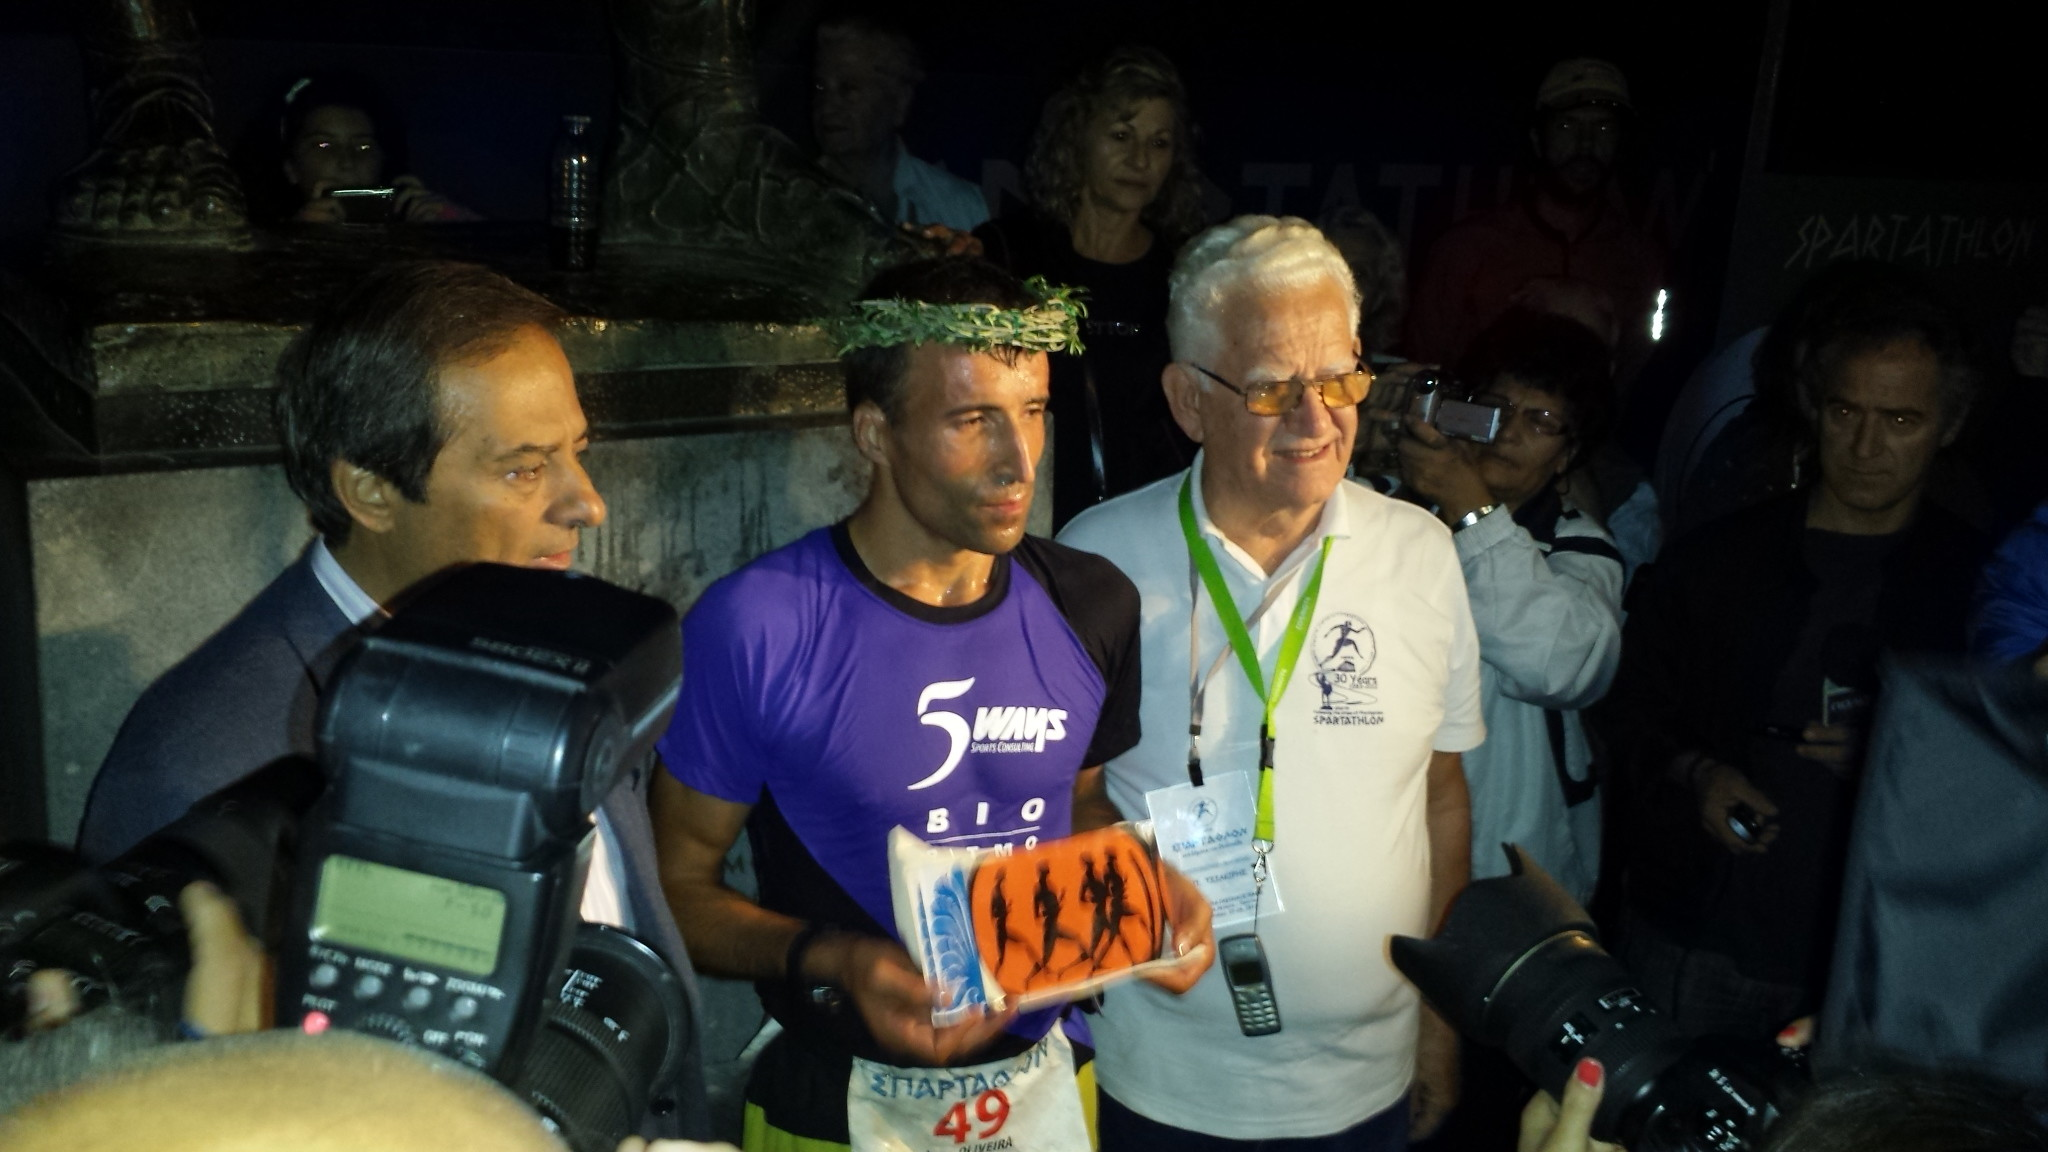 João Oliveira will run the Spartathlon this Friday, and this year he hopes to win again